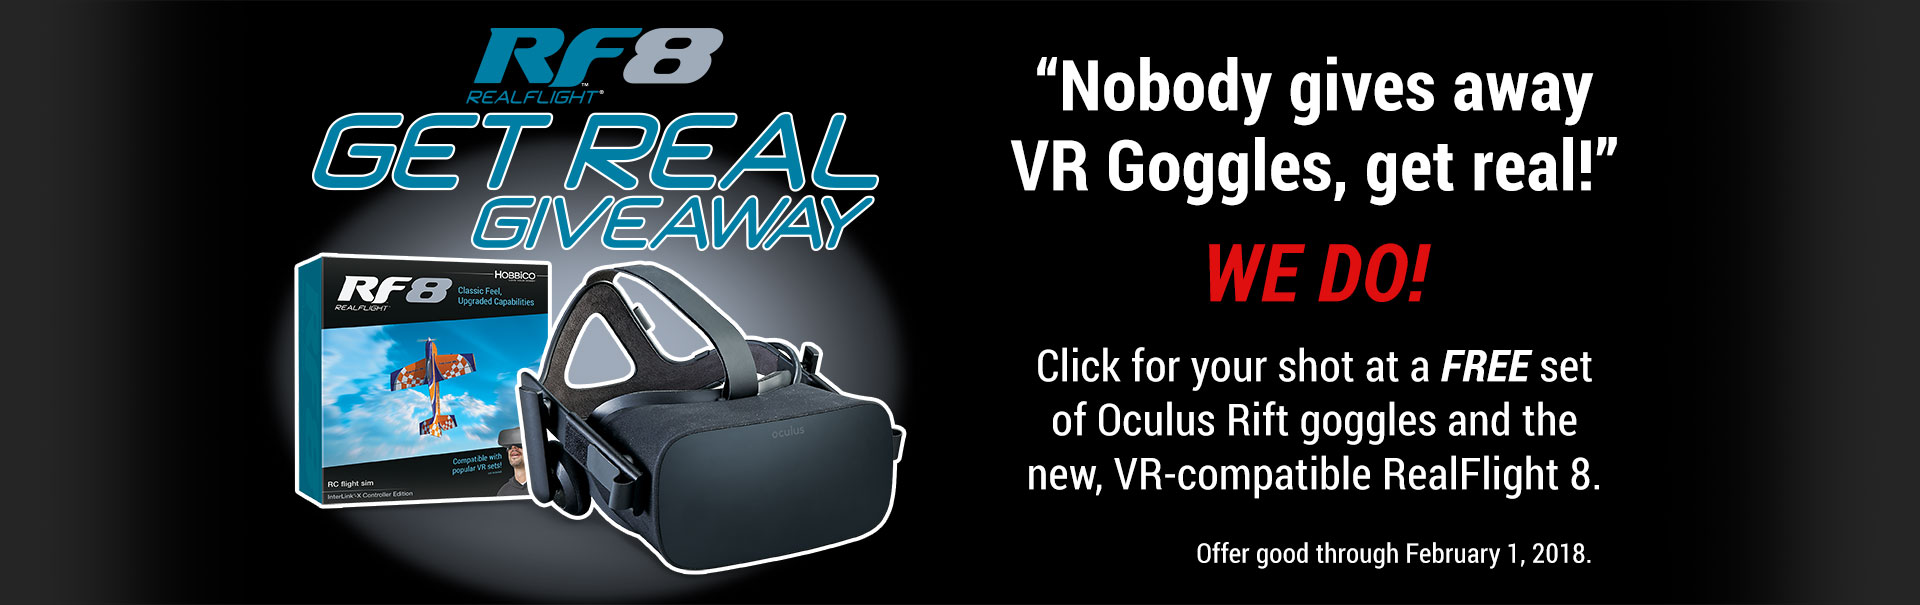 RF8 Get Real Giveaway.  Click for a chot at a FREE set of Oculus Rfit goggles and the new, RF-compatible RealFlight 8.  Offer good through February 1, 2018.